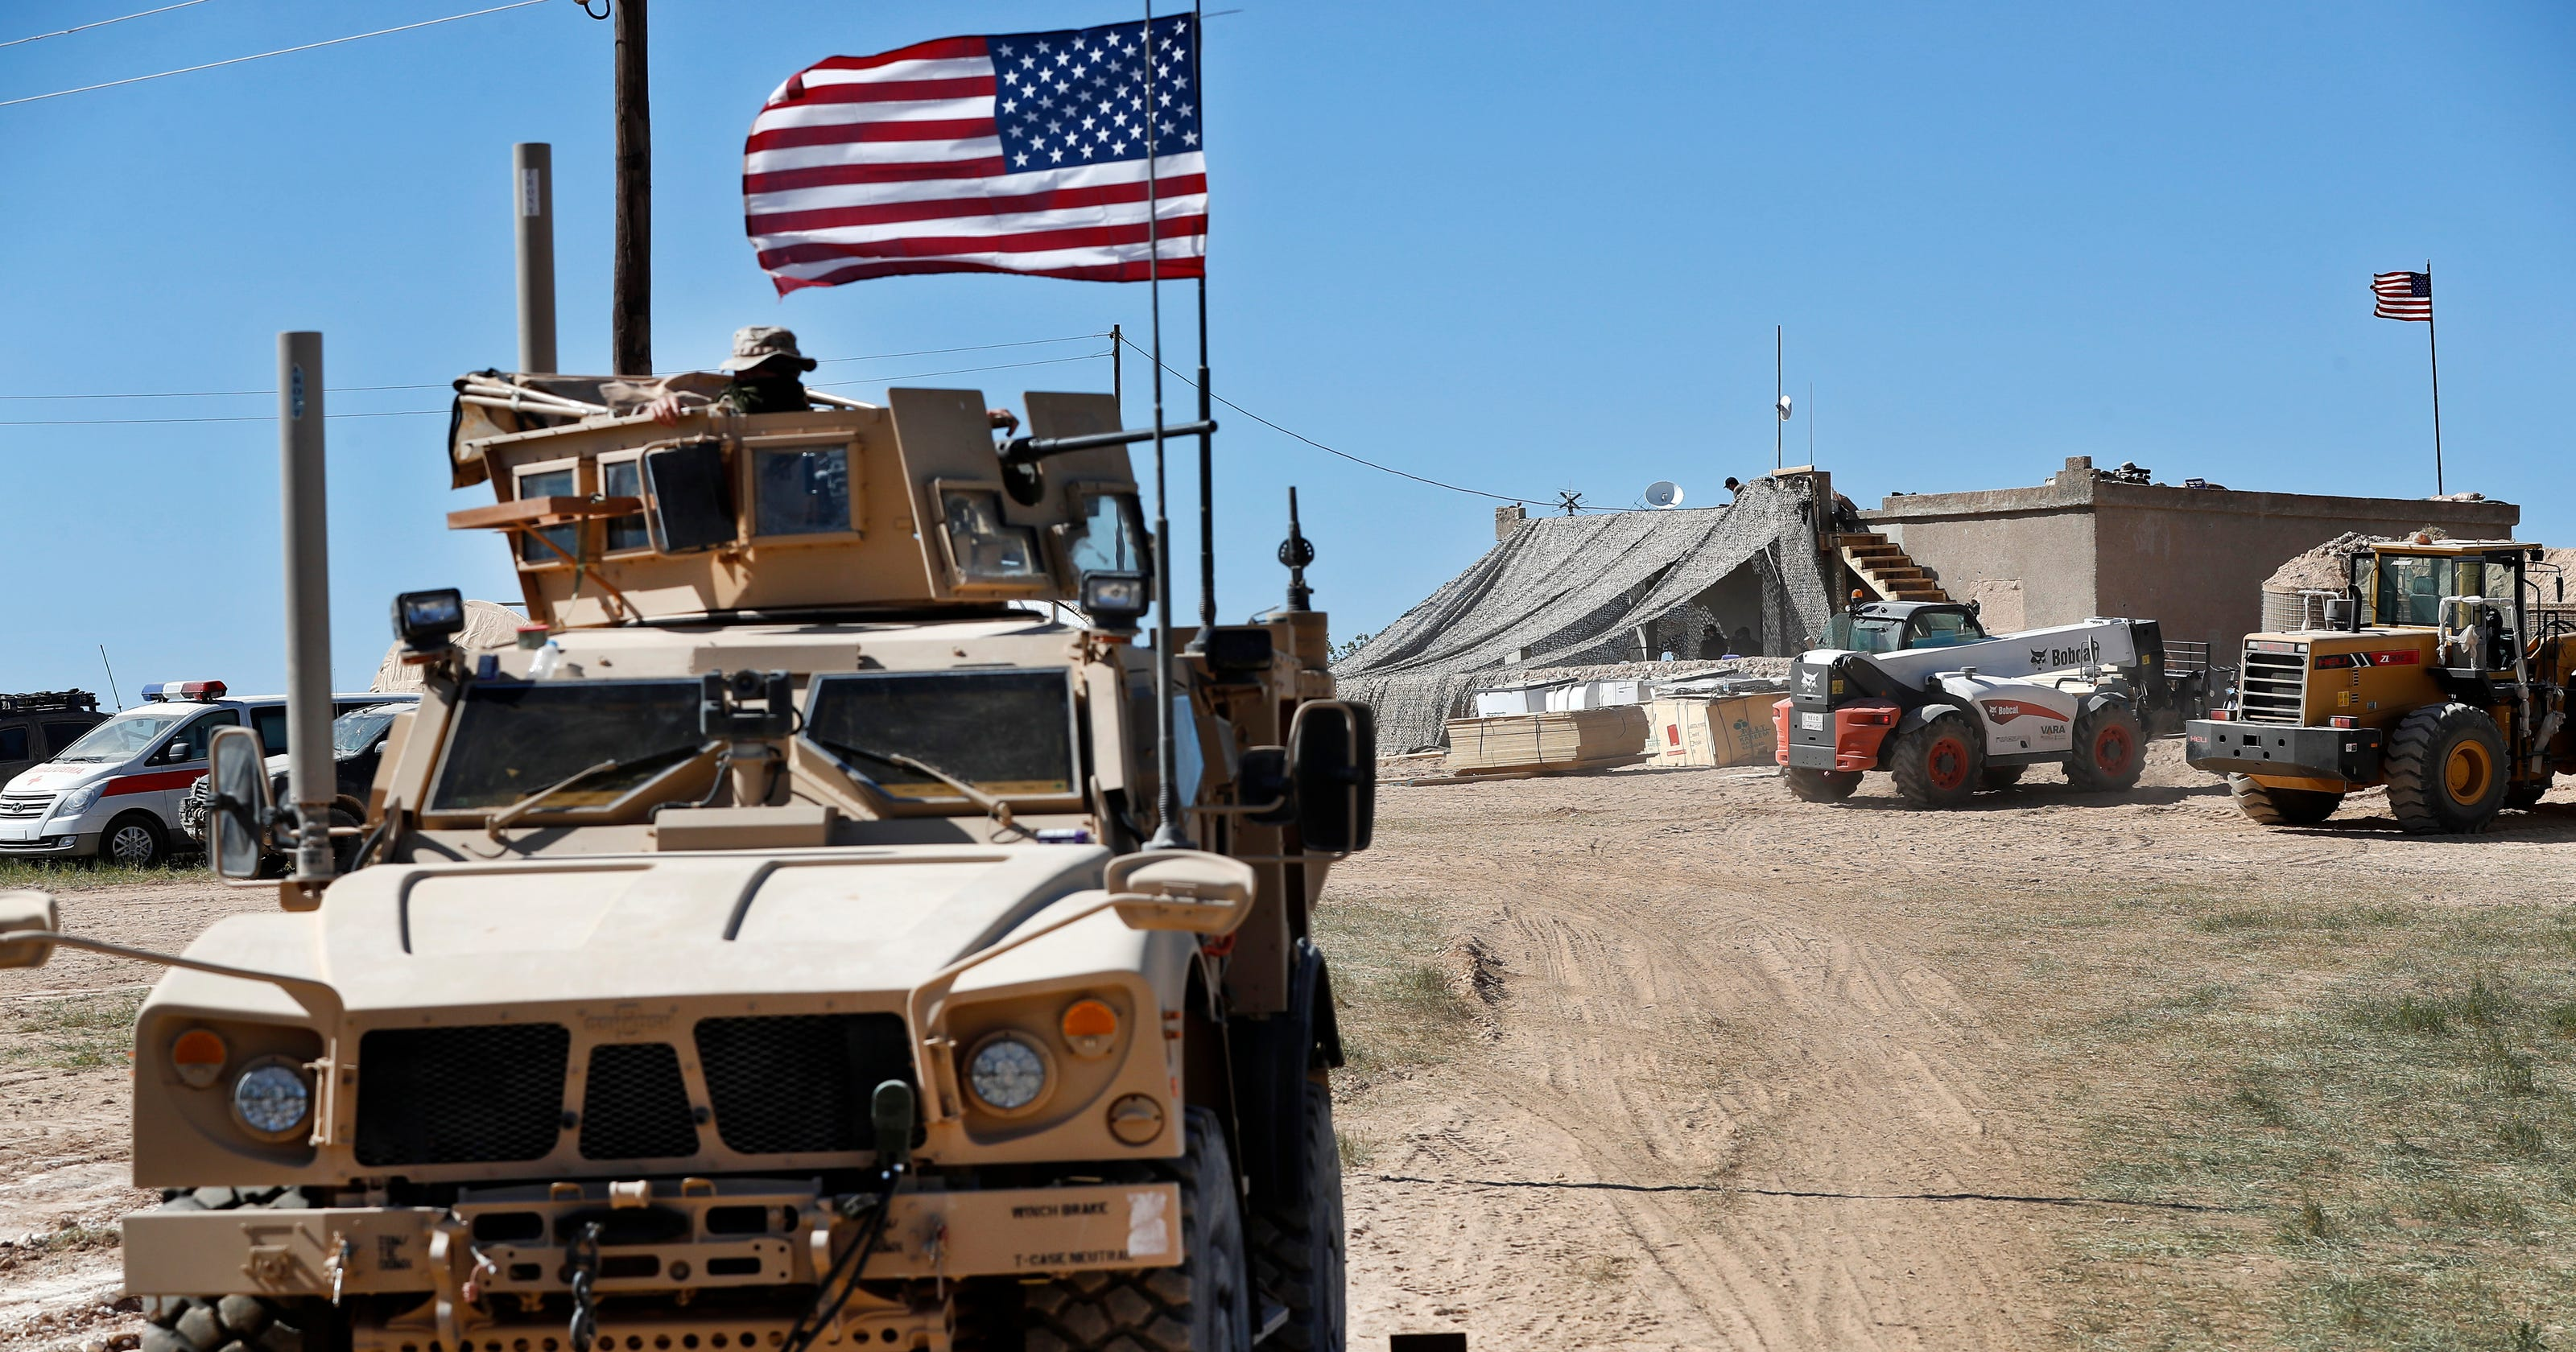 US troops in Syria: How many are stationed there